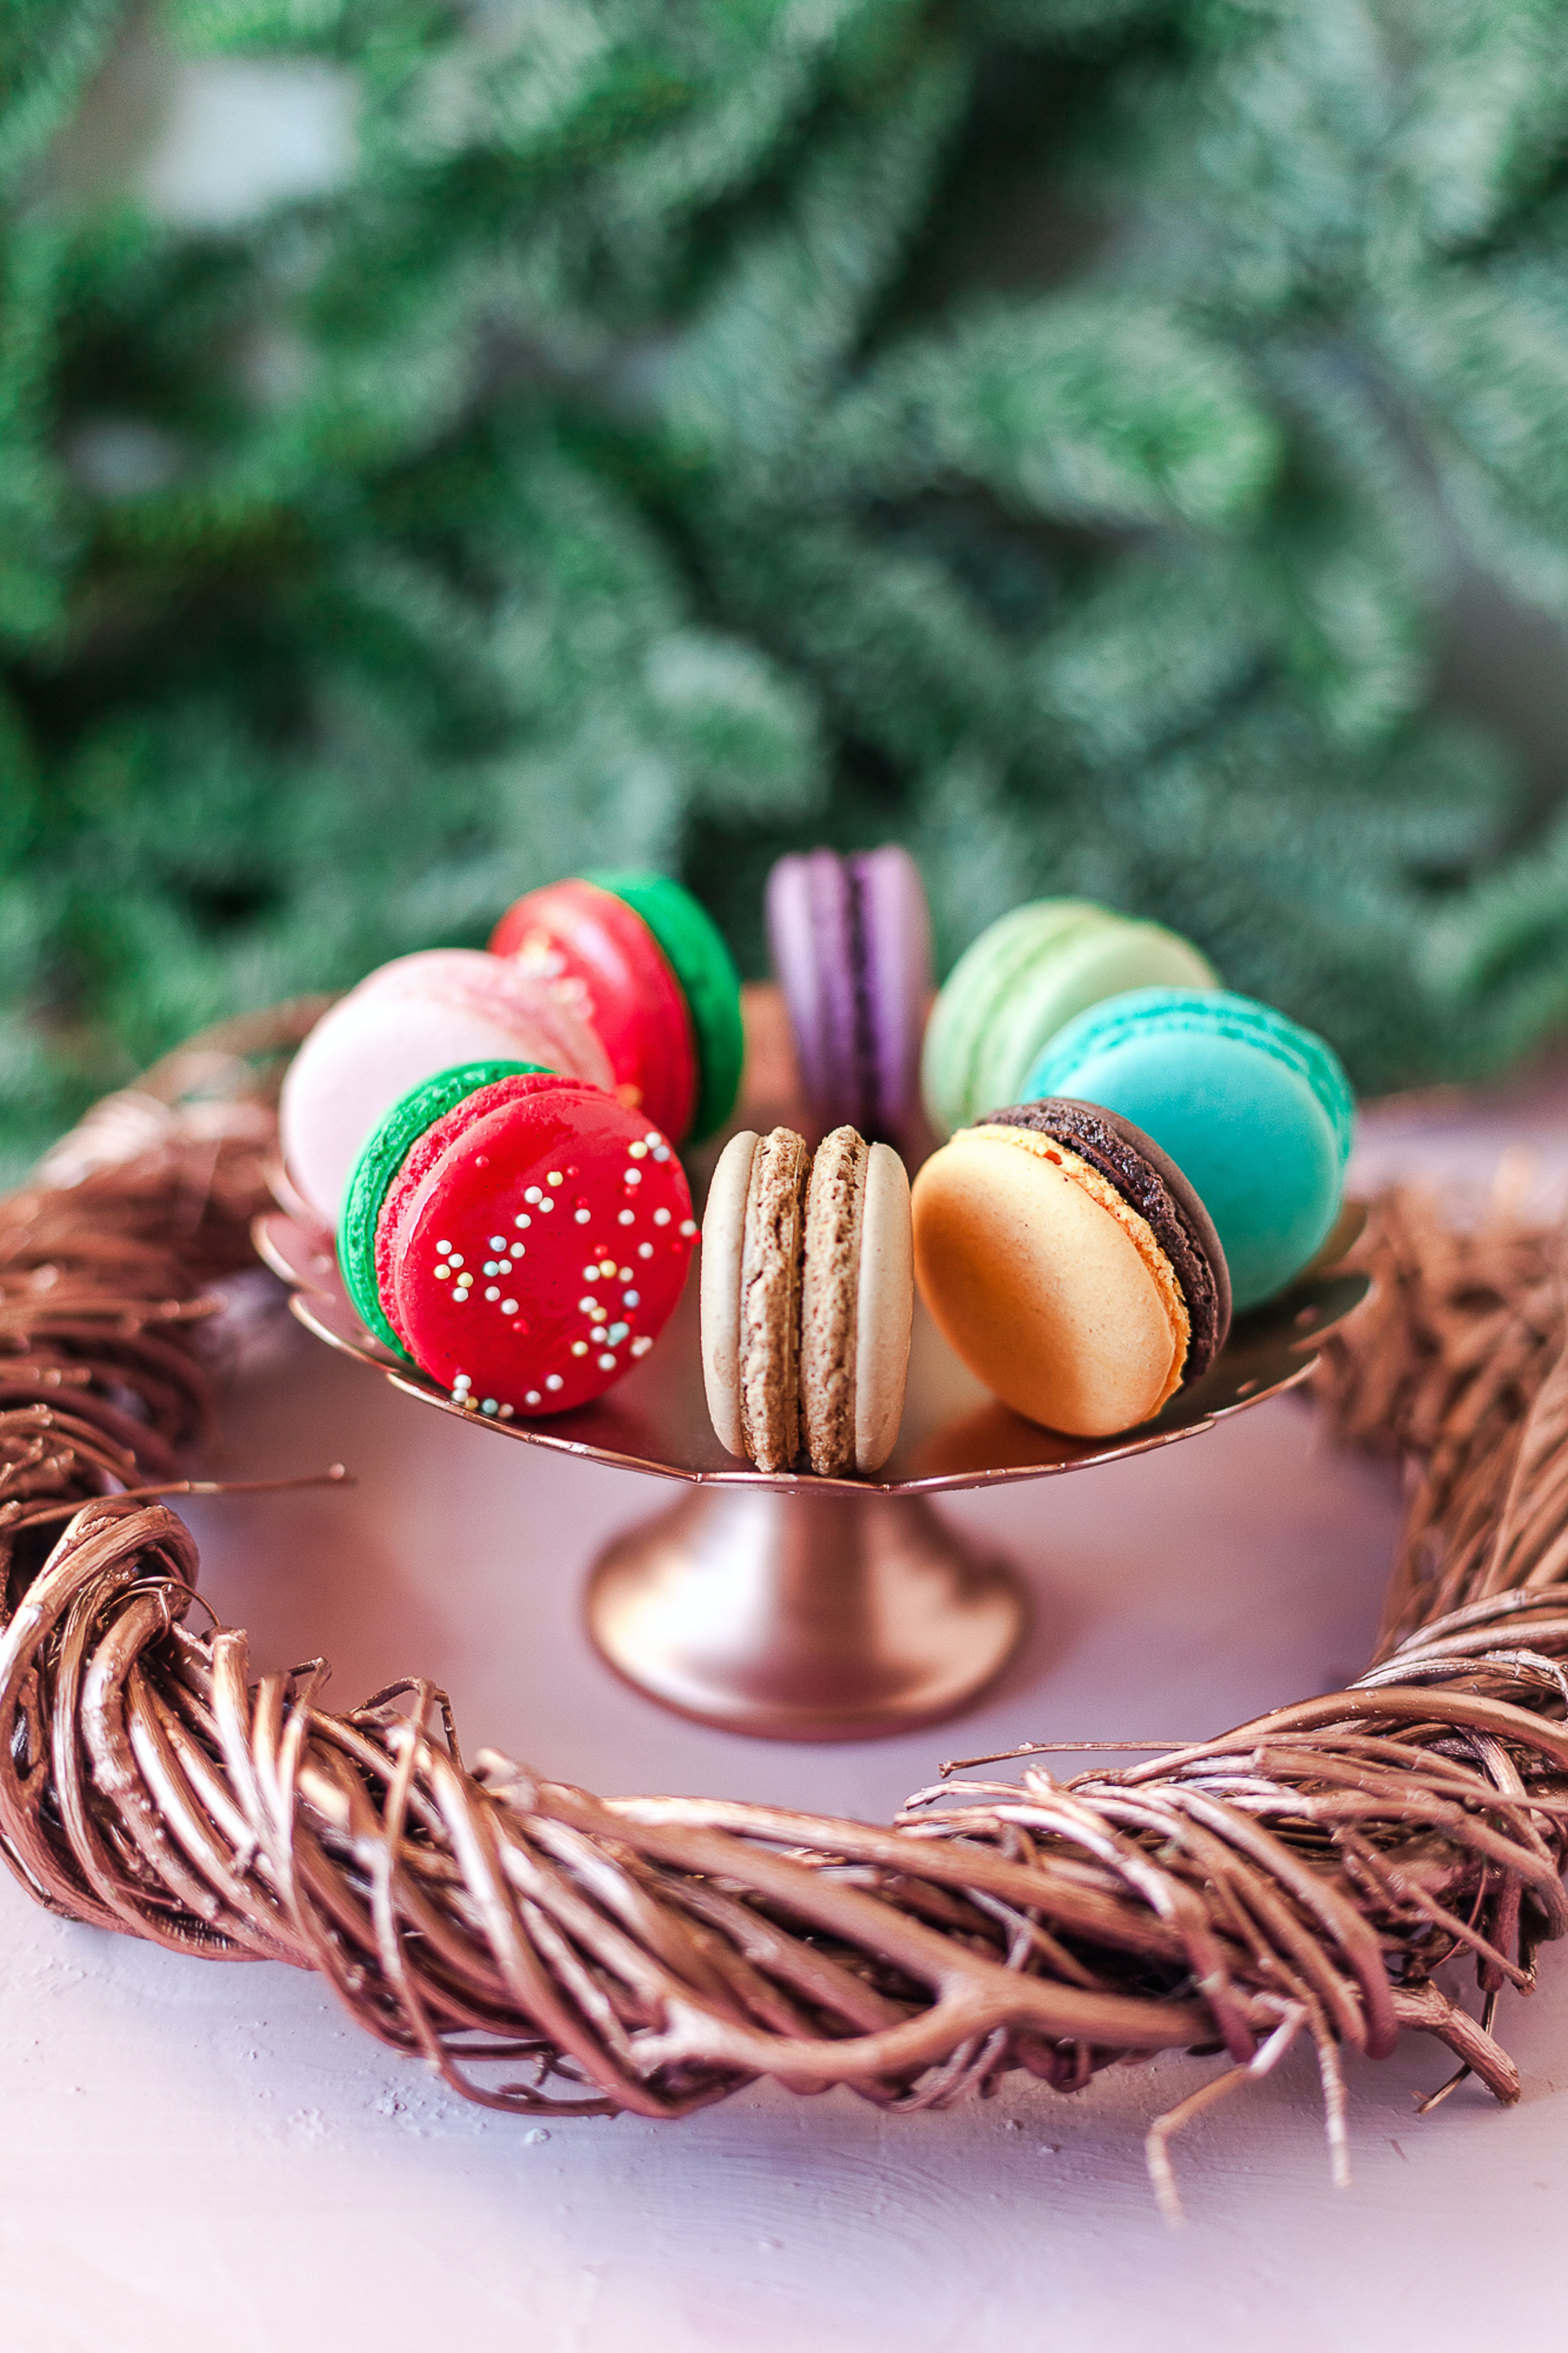 90228 download wallpaper Food, Desert, Cookies, Multicolored, Motley, Macaroons, Makaroons screensavers and pictures for free